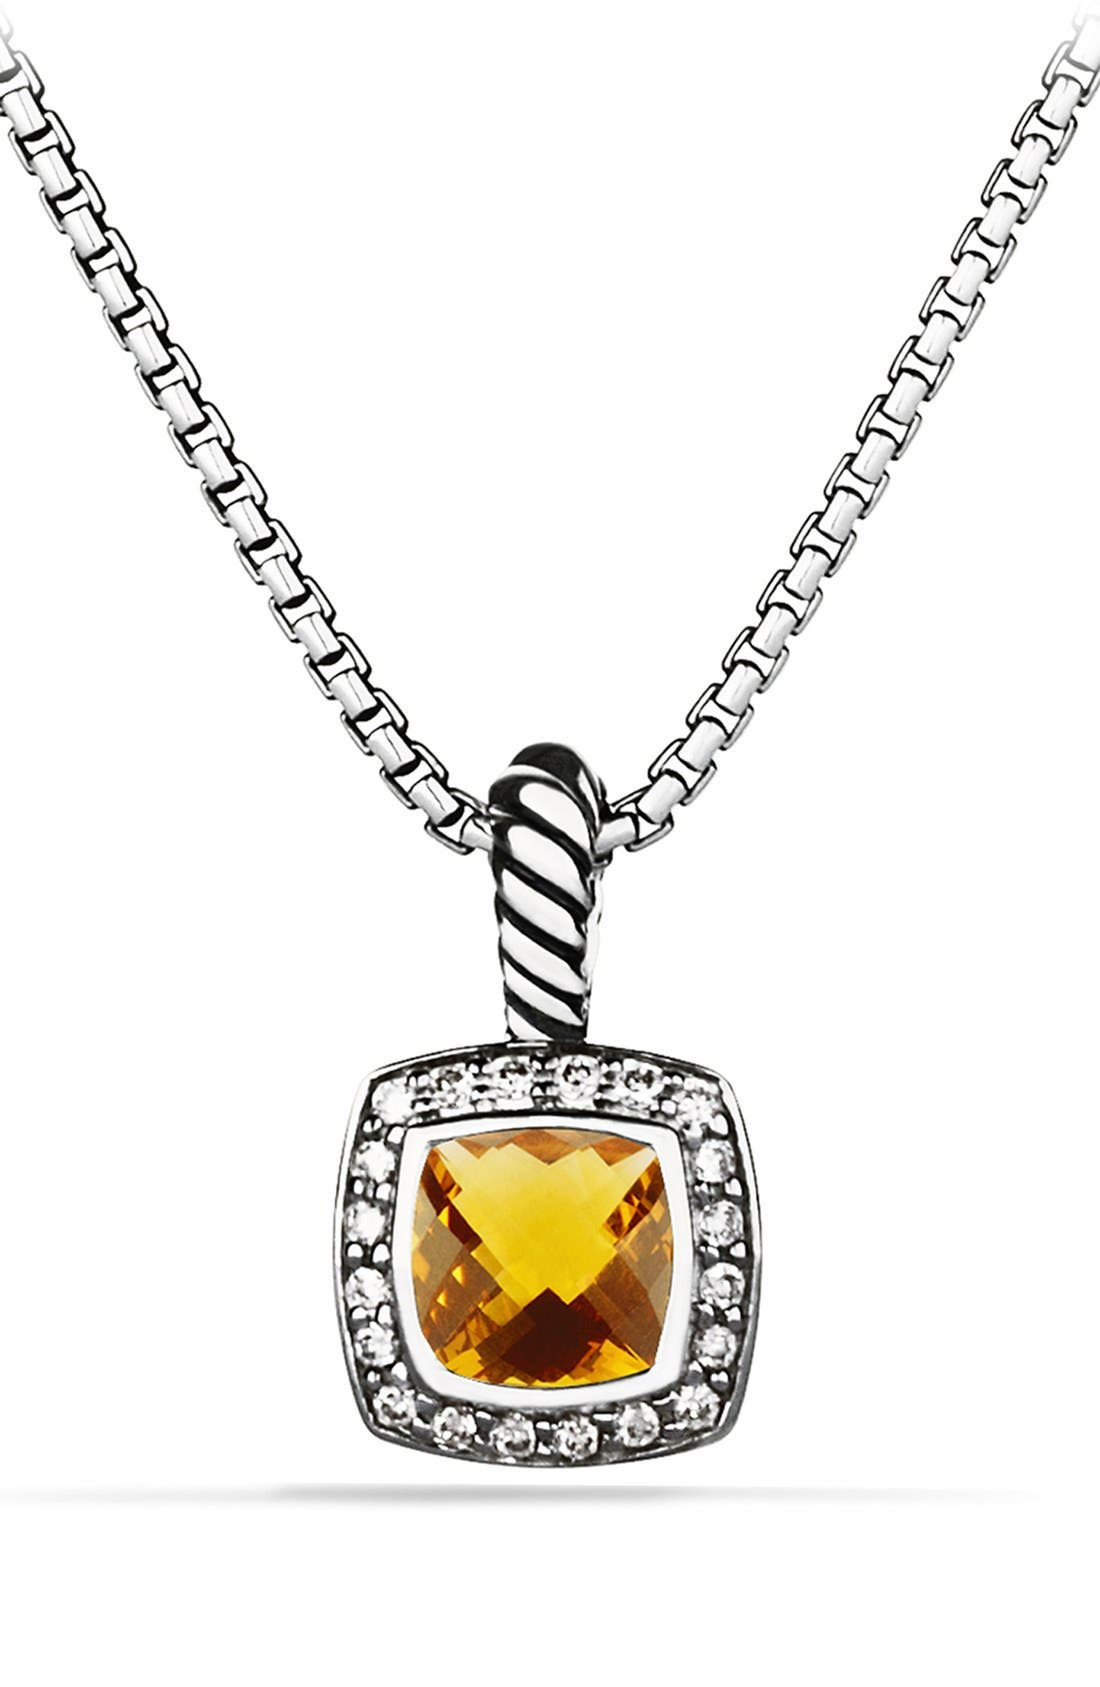 David Yurman 'Albion' Petite Pendant with Semiprecious Stone & Diamonds on Chain